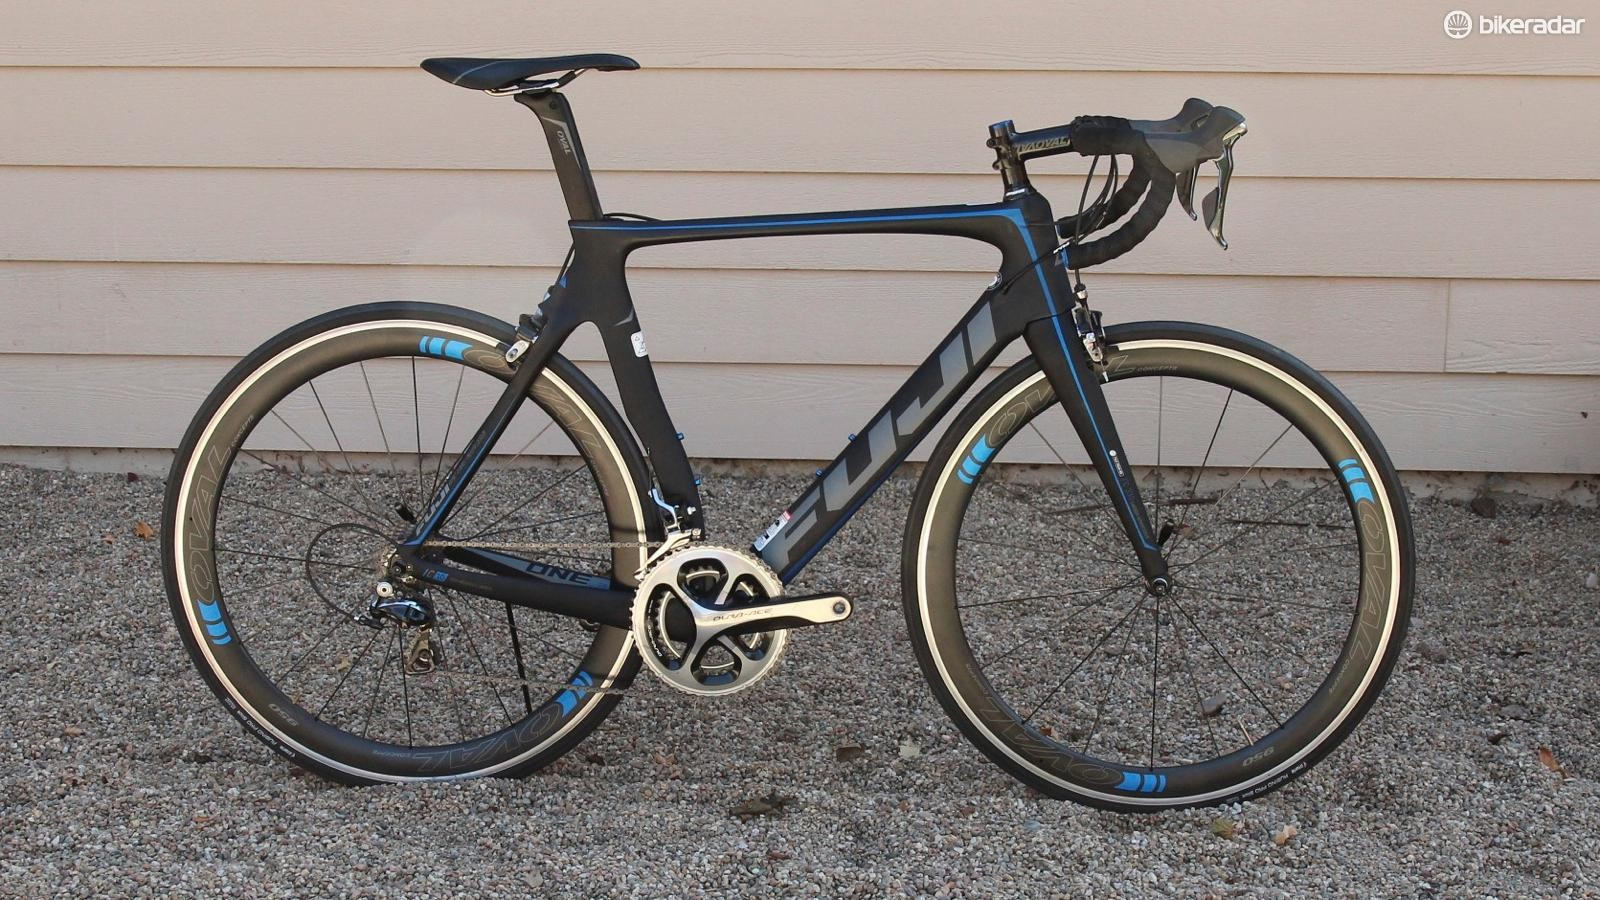 The Fuji Transonic 1.3 is one of eight builds. It comes with full Shimano Dura-Ace, down to the cassette and chain